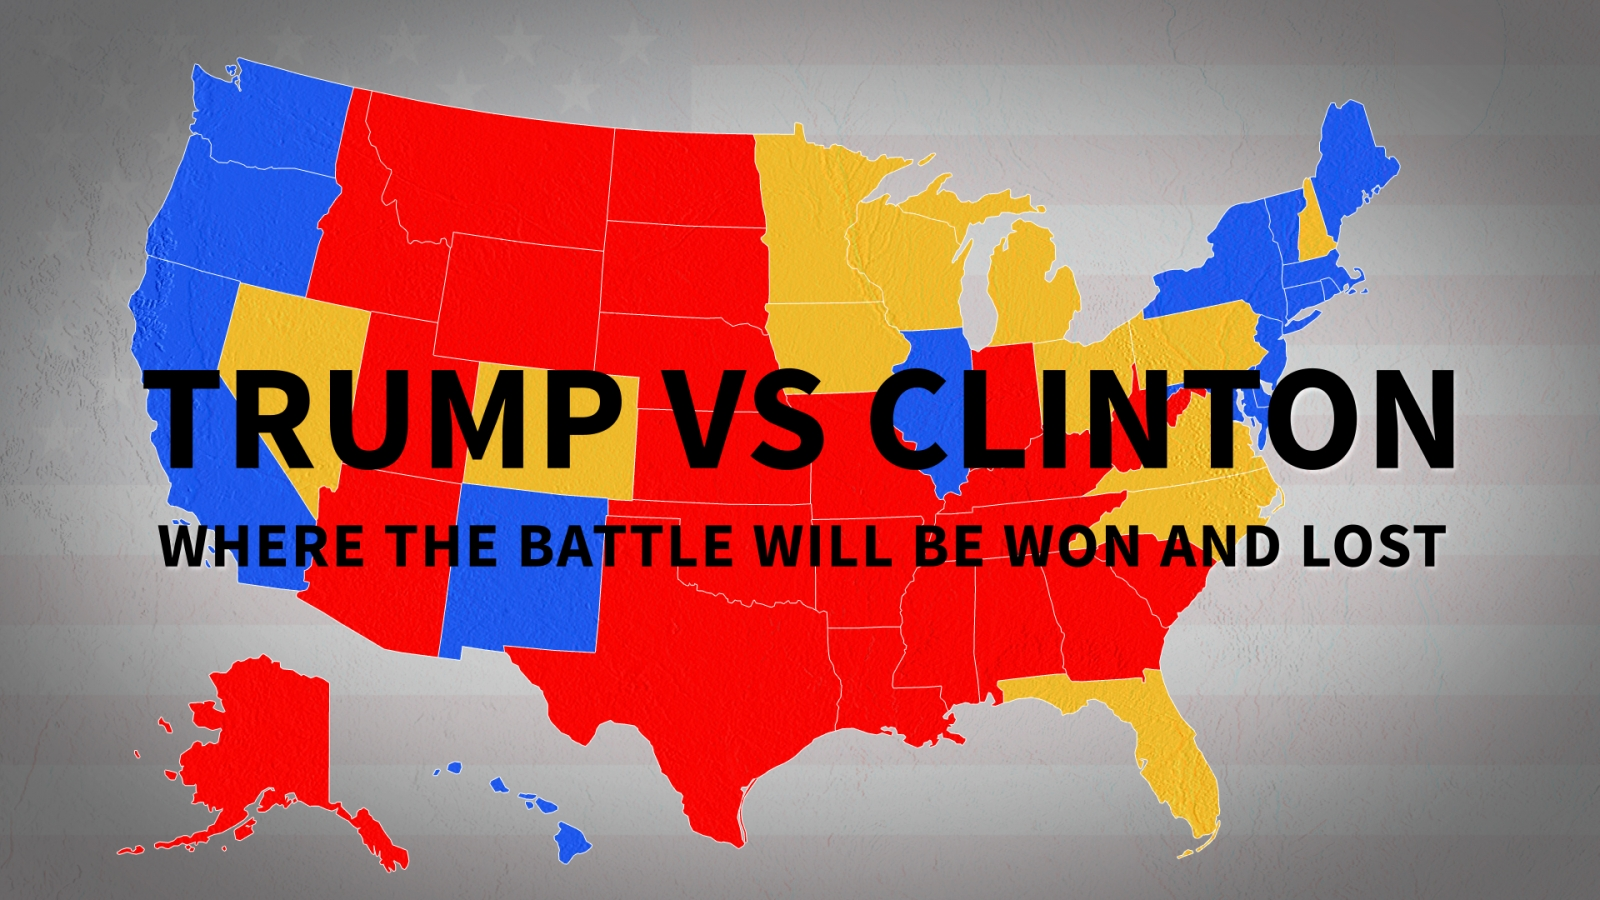 US election 2016: Where the battle between Trump and Clinton will be won or  lost